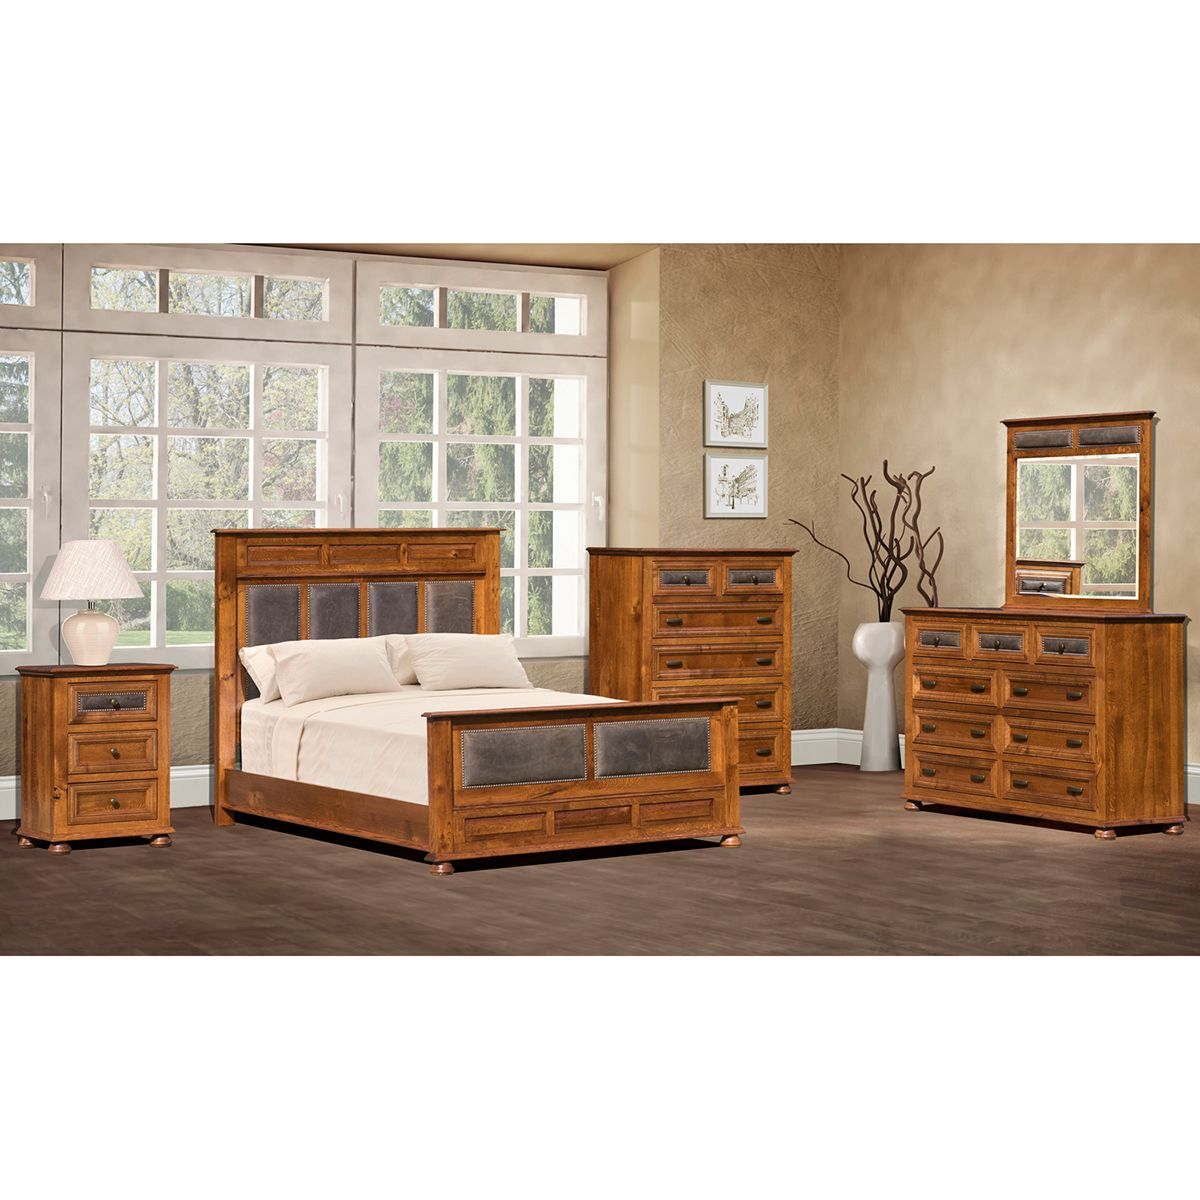 Canyon Creek Bedroom Collection is Amish Made. Comes with